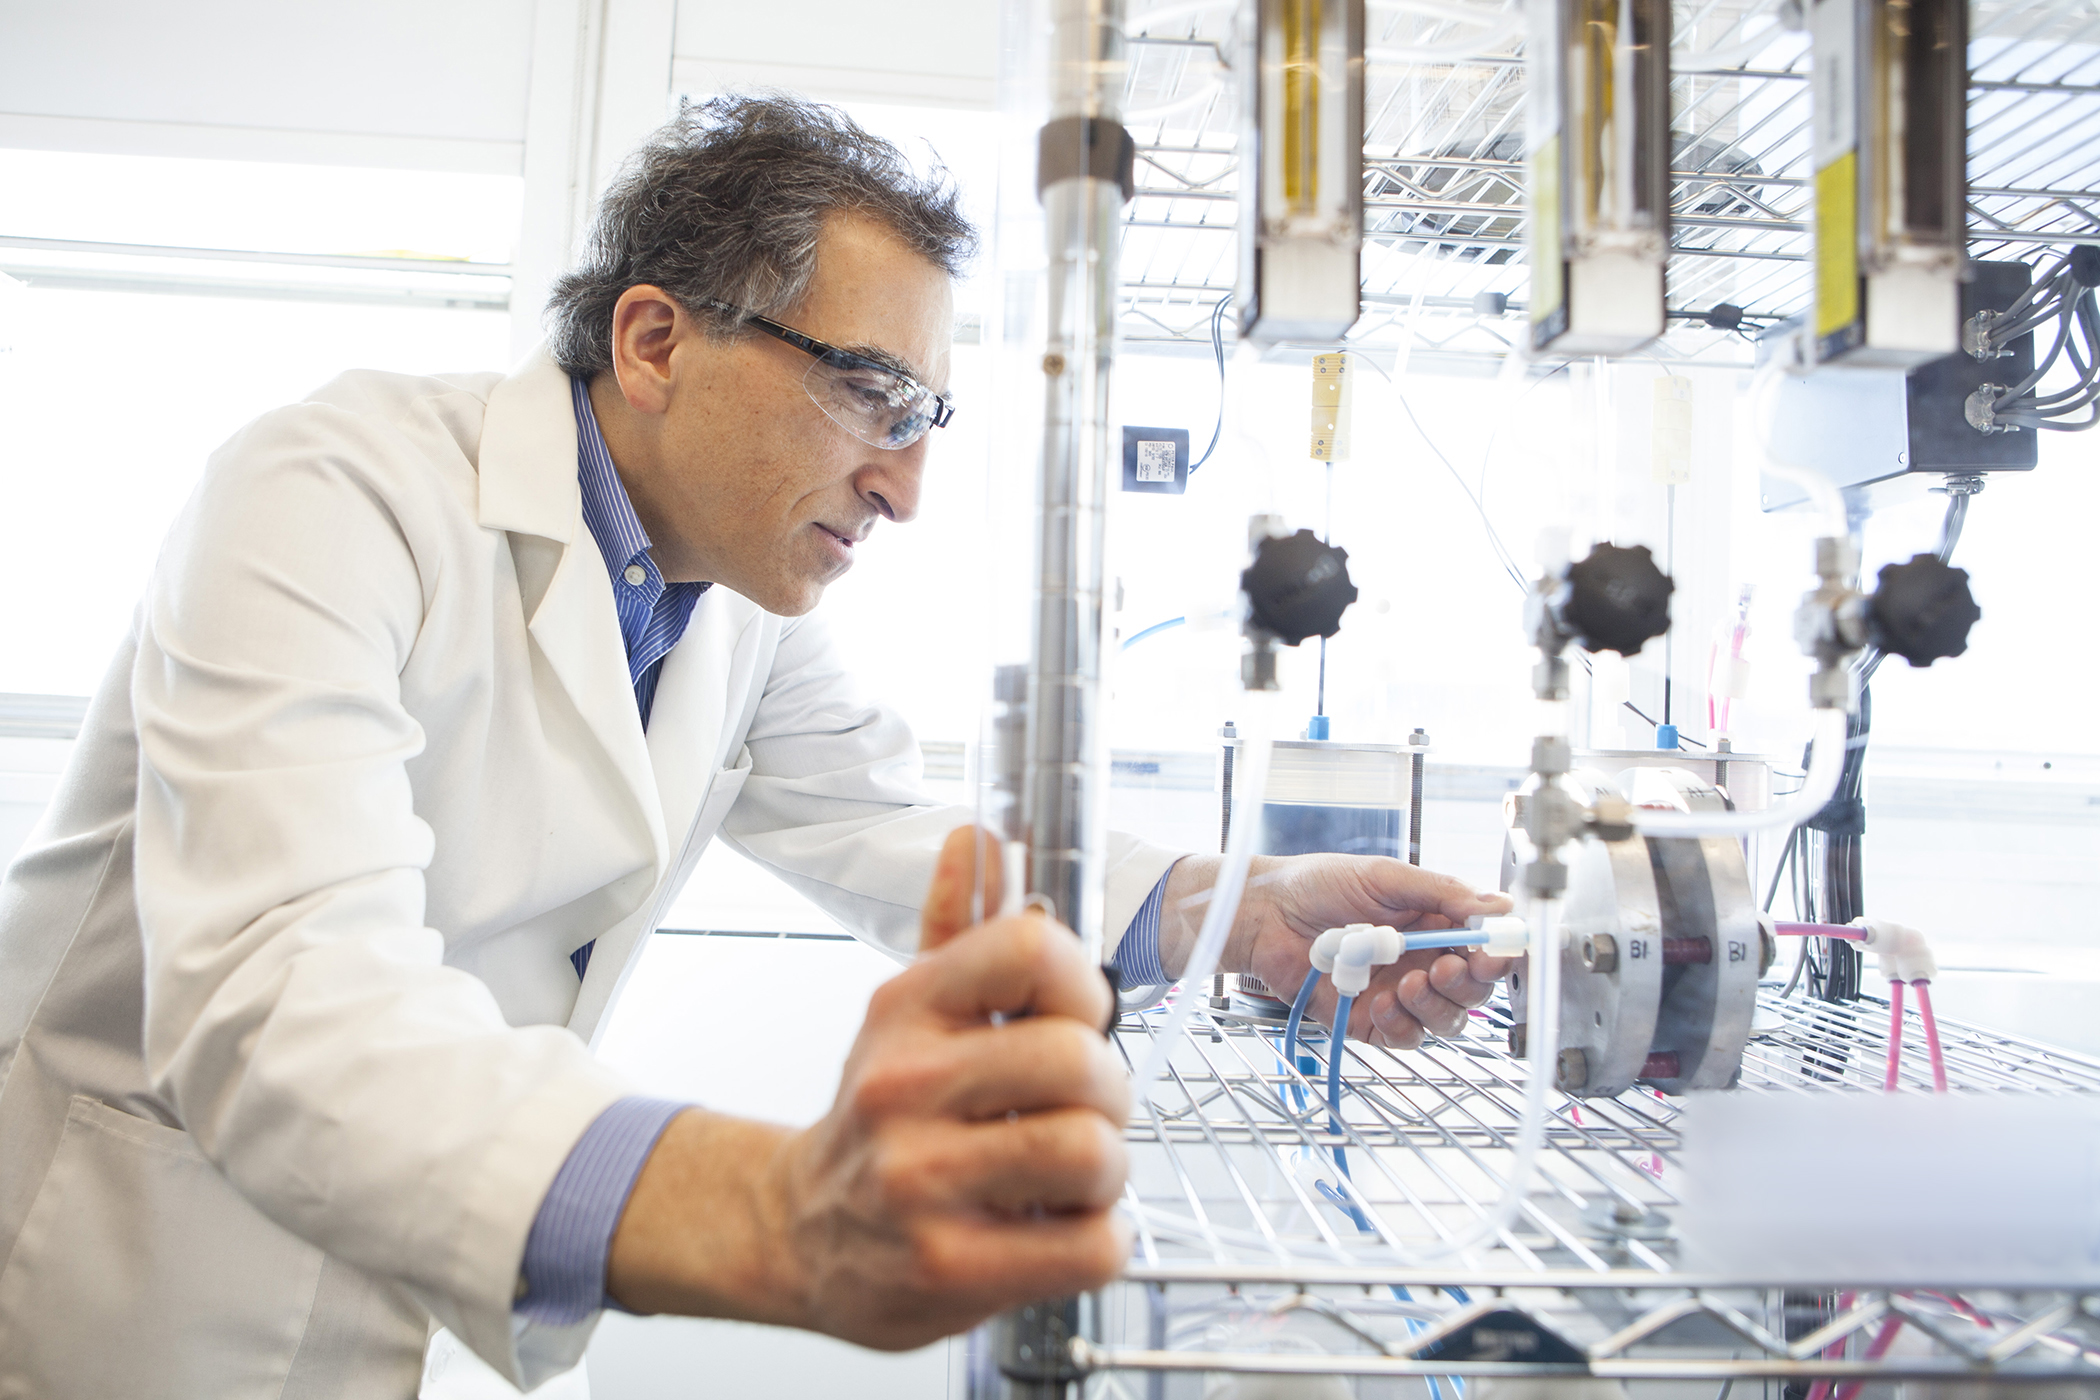 Harvard SEAS Professor Michael J. Aziz with the flow battery